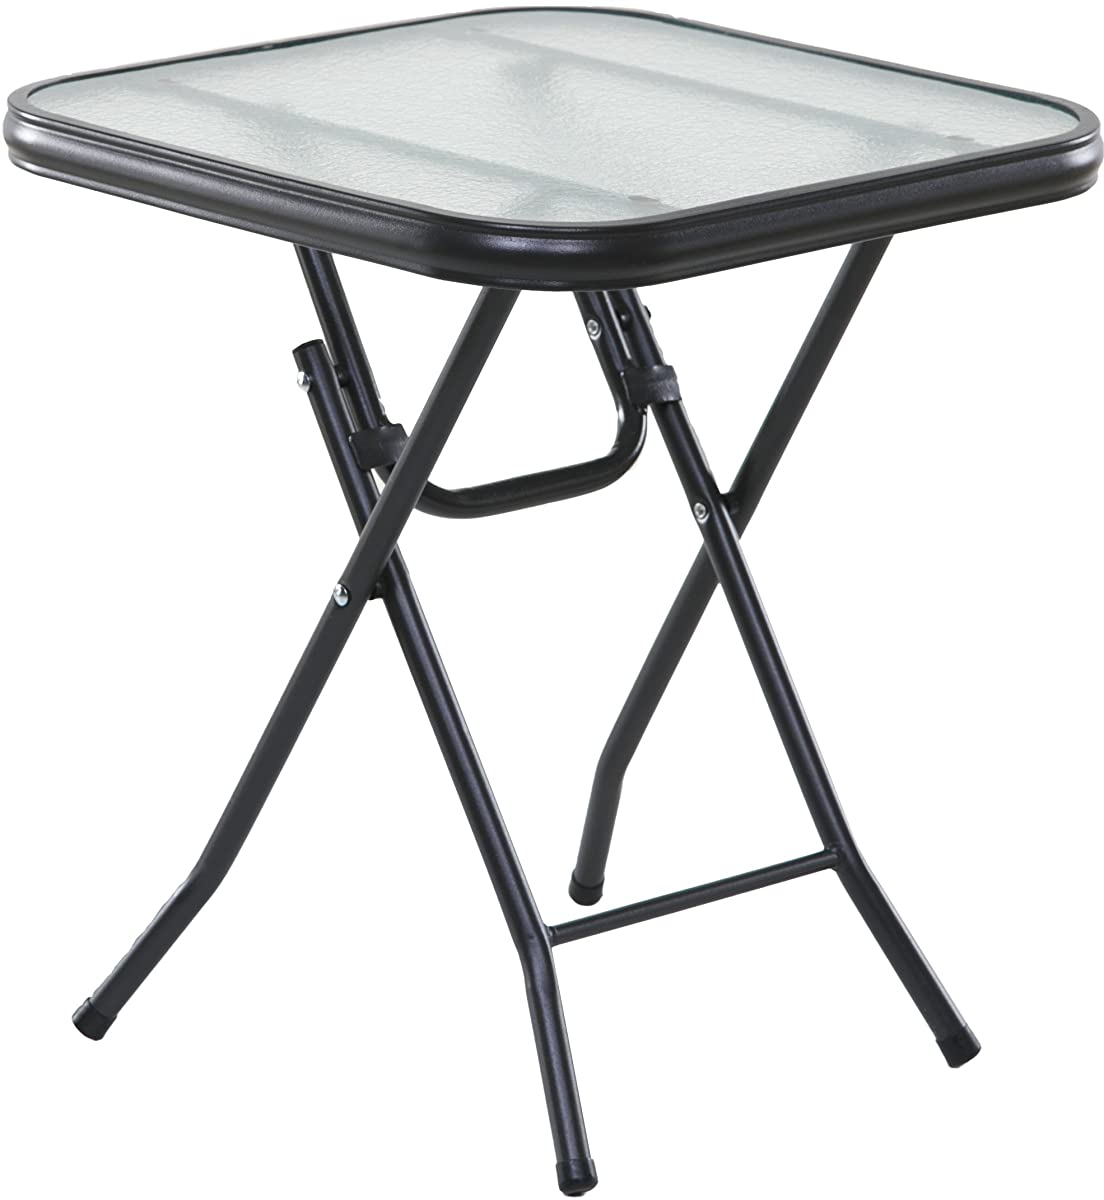 "OneSpace Basics 16"" Square Folding Side Table, Clear"